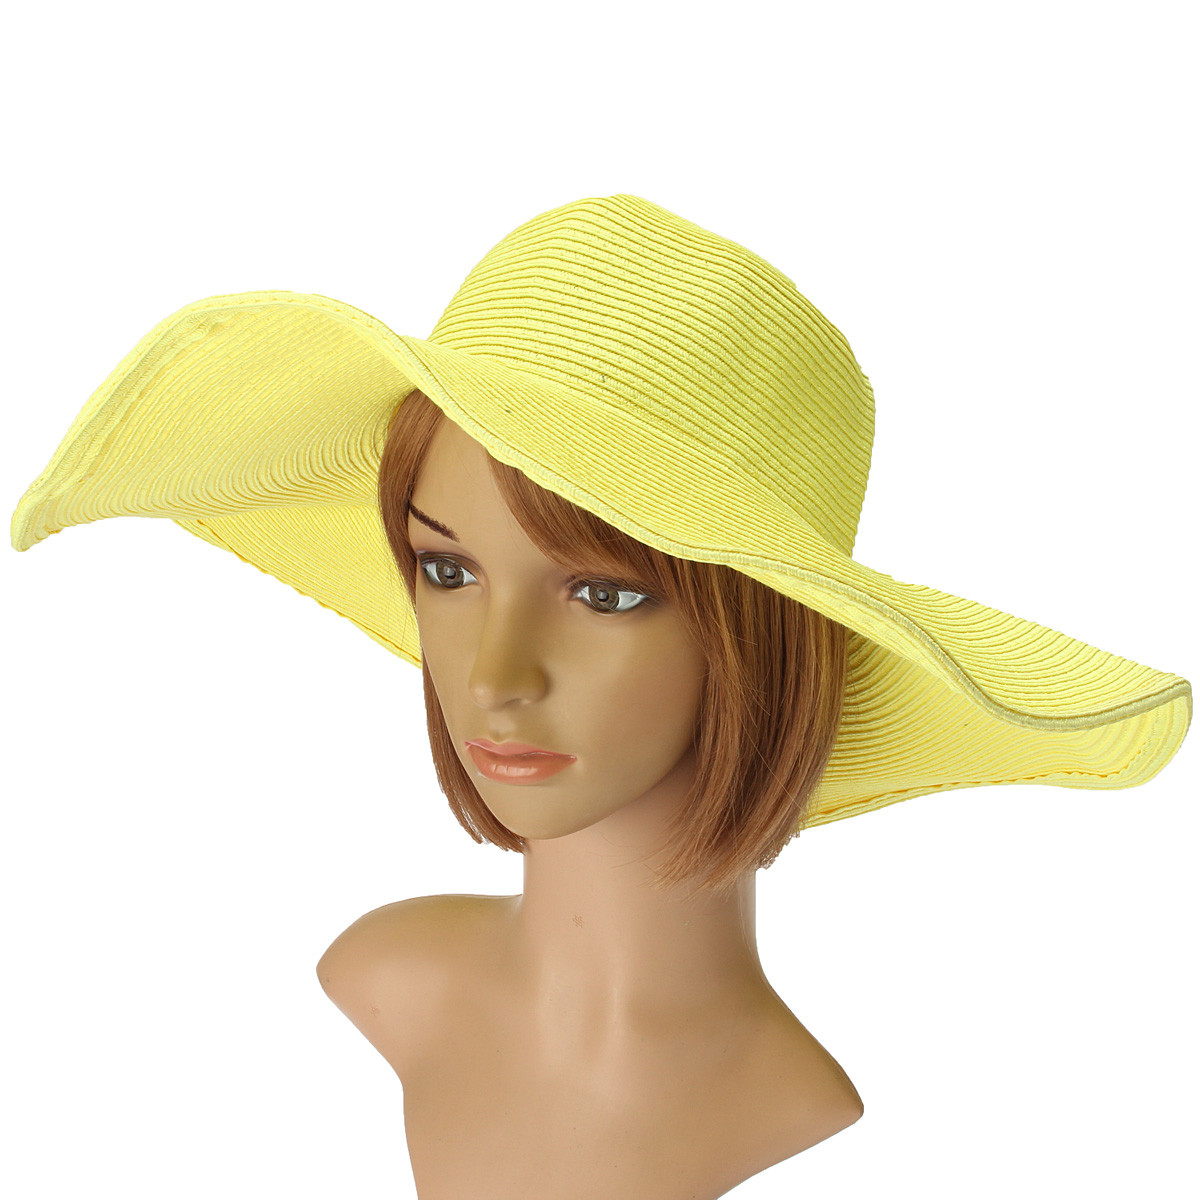 Women Lady Girls Summer Large Wide Floppy Brim Straw Beach Sun Hat Colorful Cap